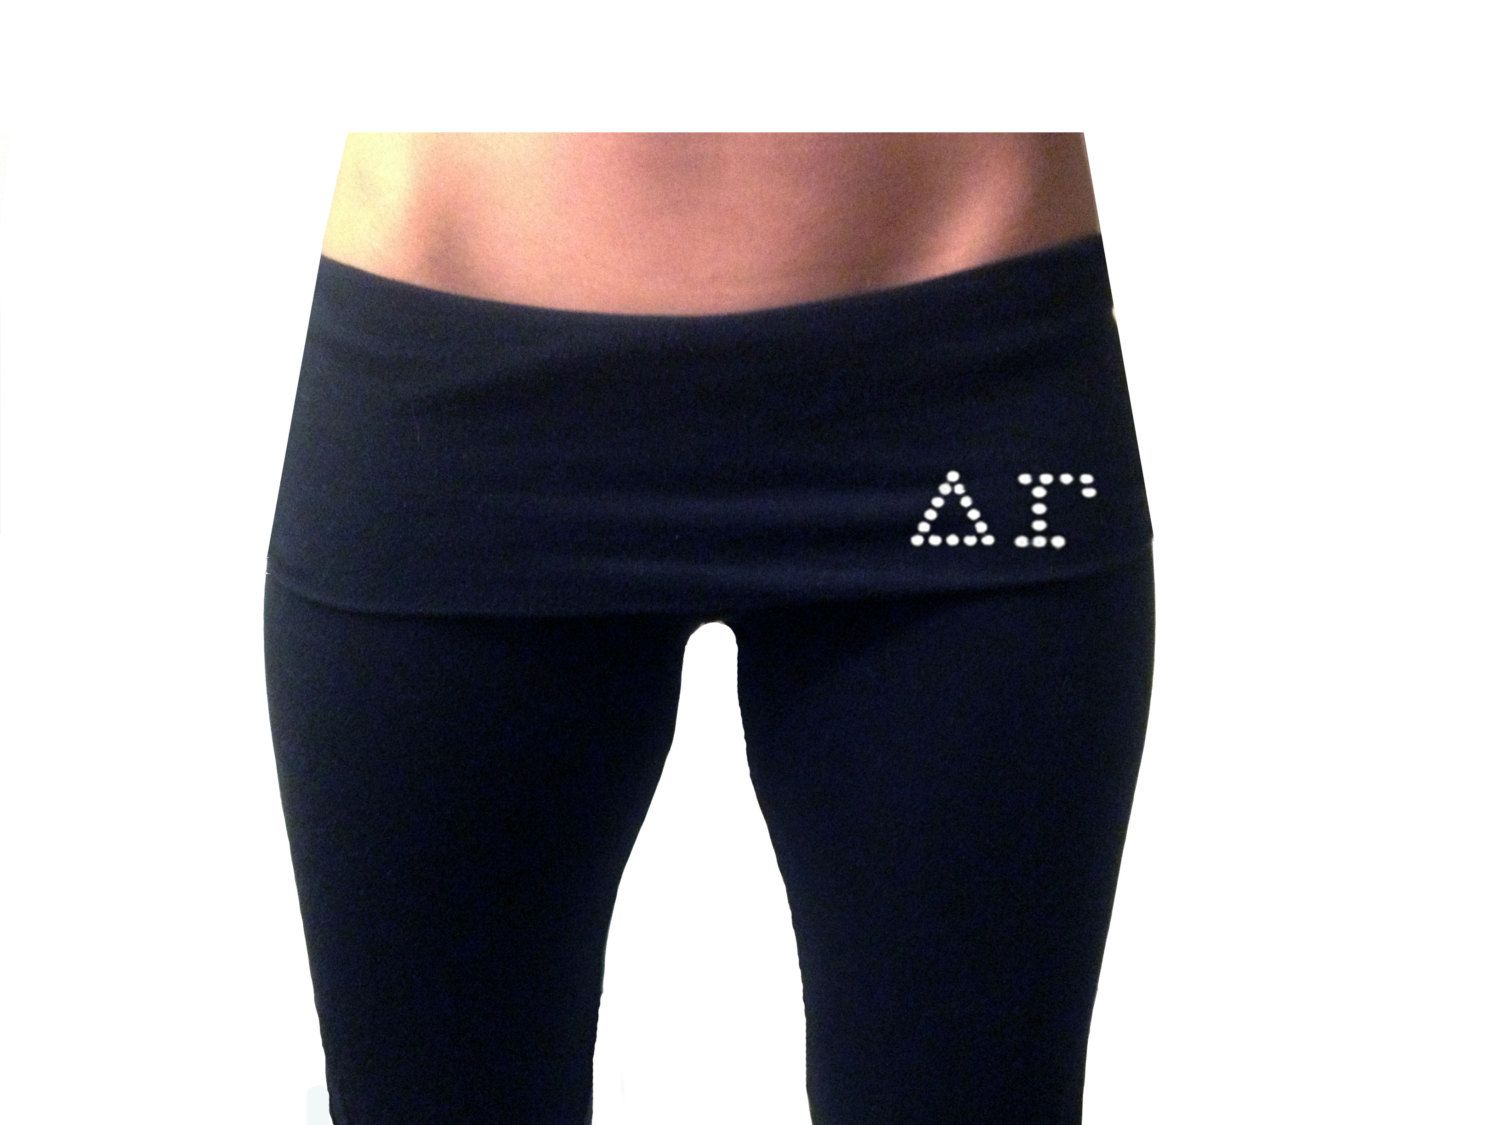 Customized Yoga Pants with Sororities Letters on Front by LoveGreekLife on Etsy